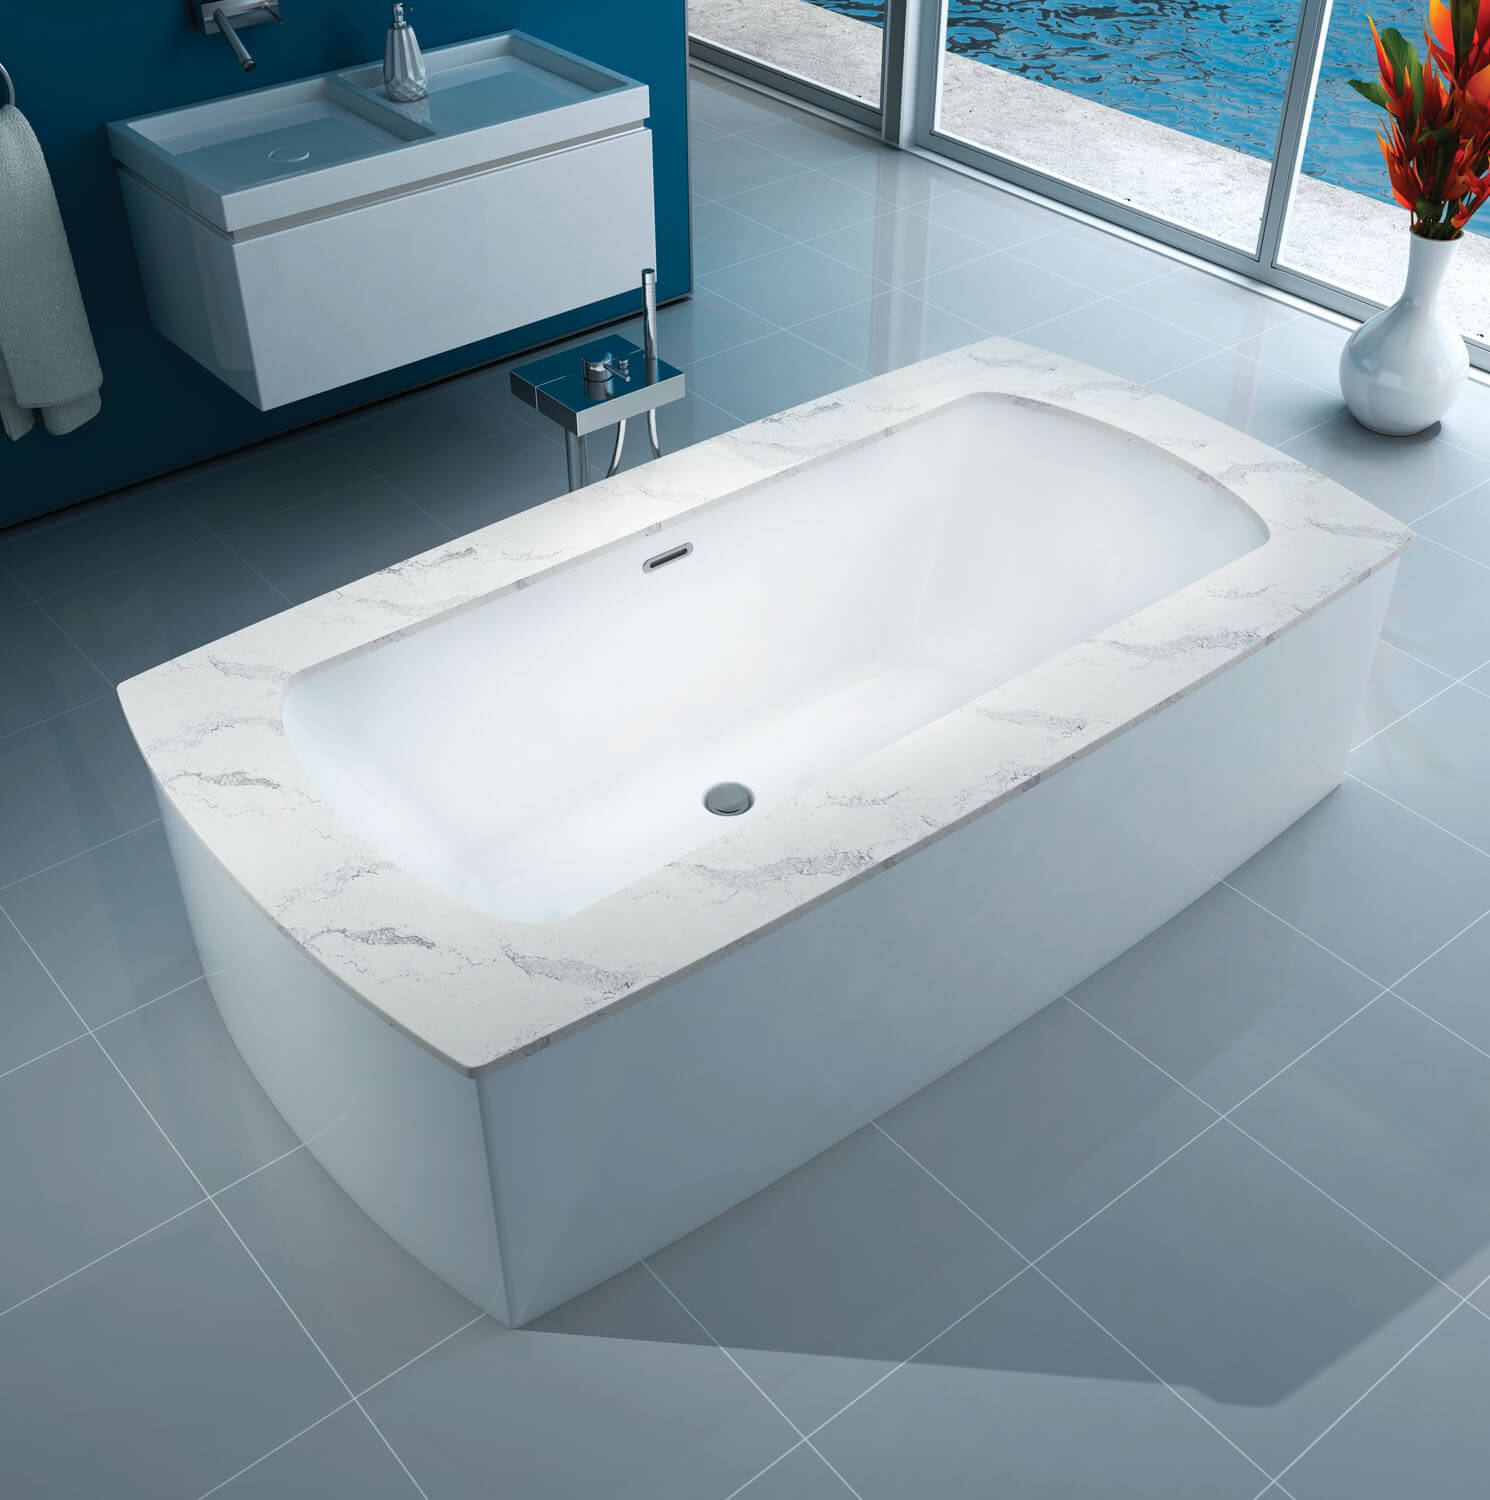 Monarch 7338C air jet bathtub for your modern bathroom